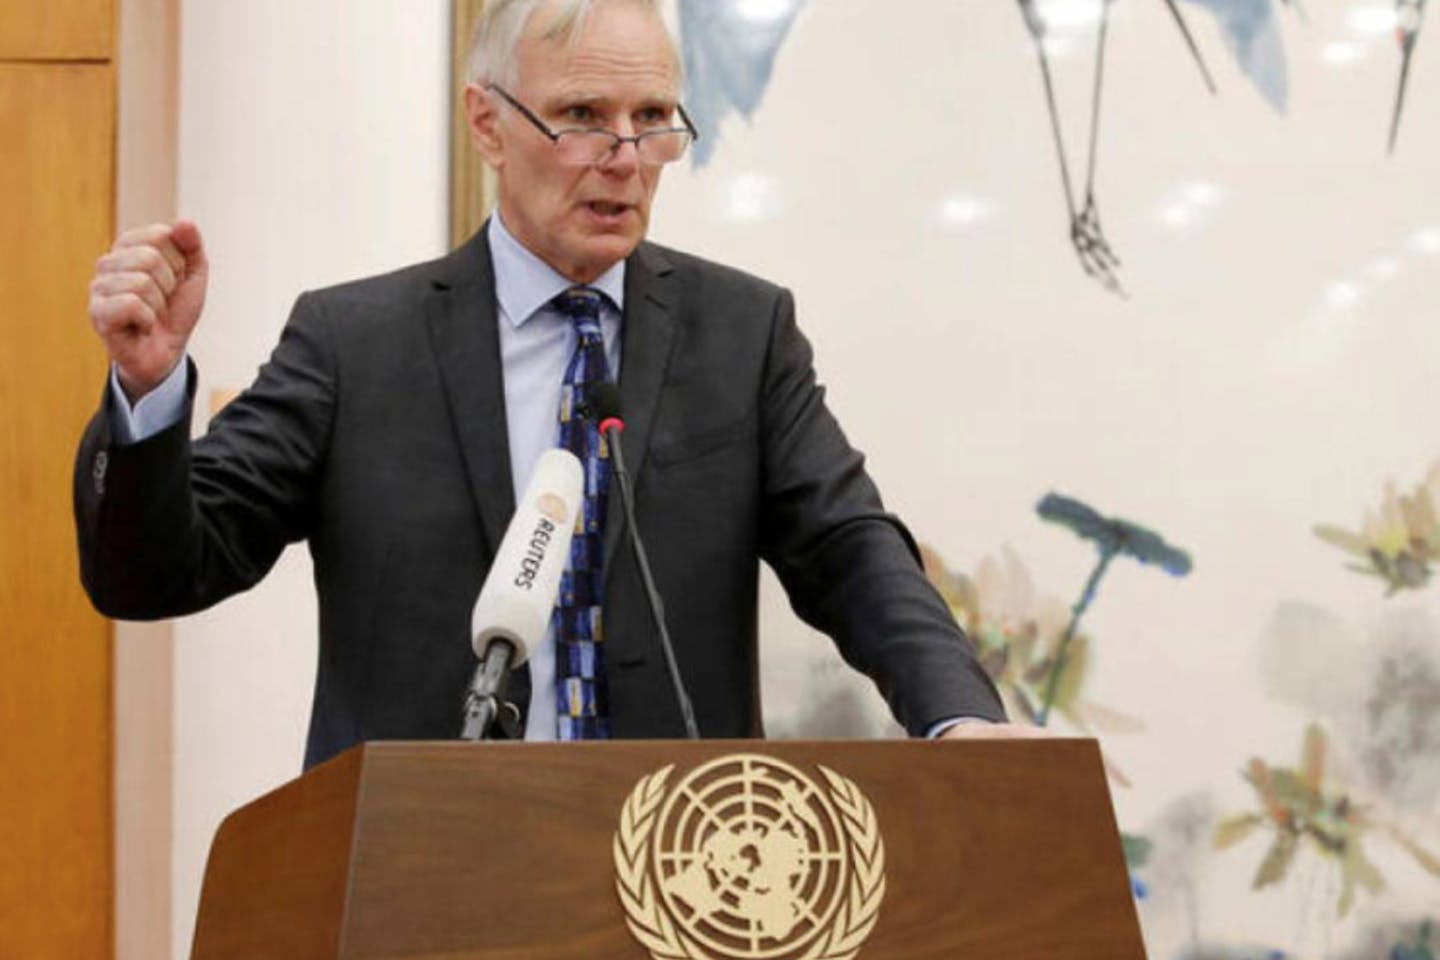 Philip Alston, former special rapporteur on extreme poverty and human rights UN